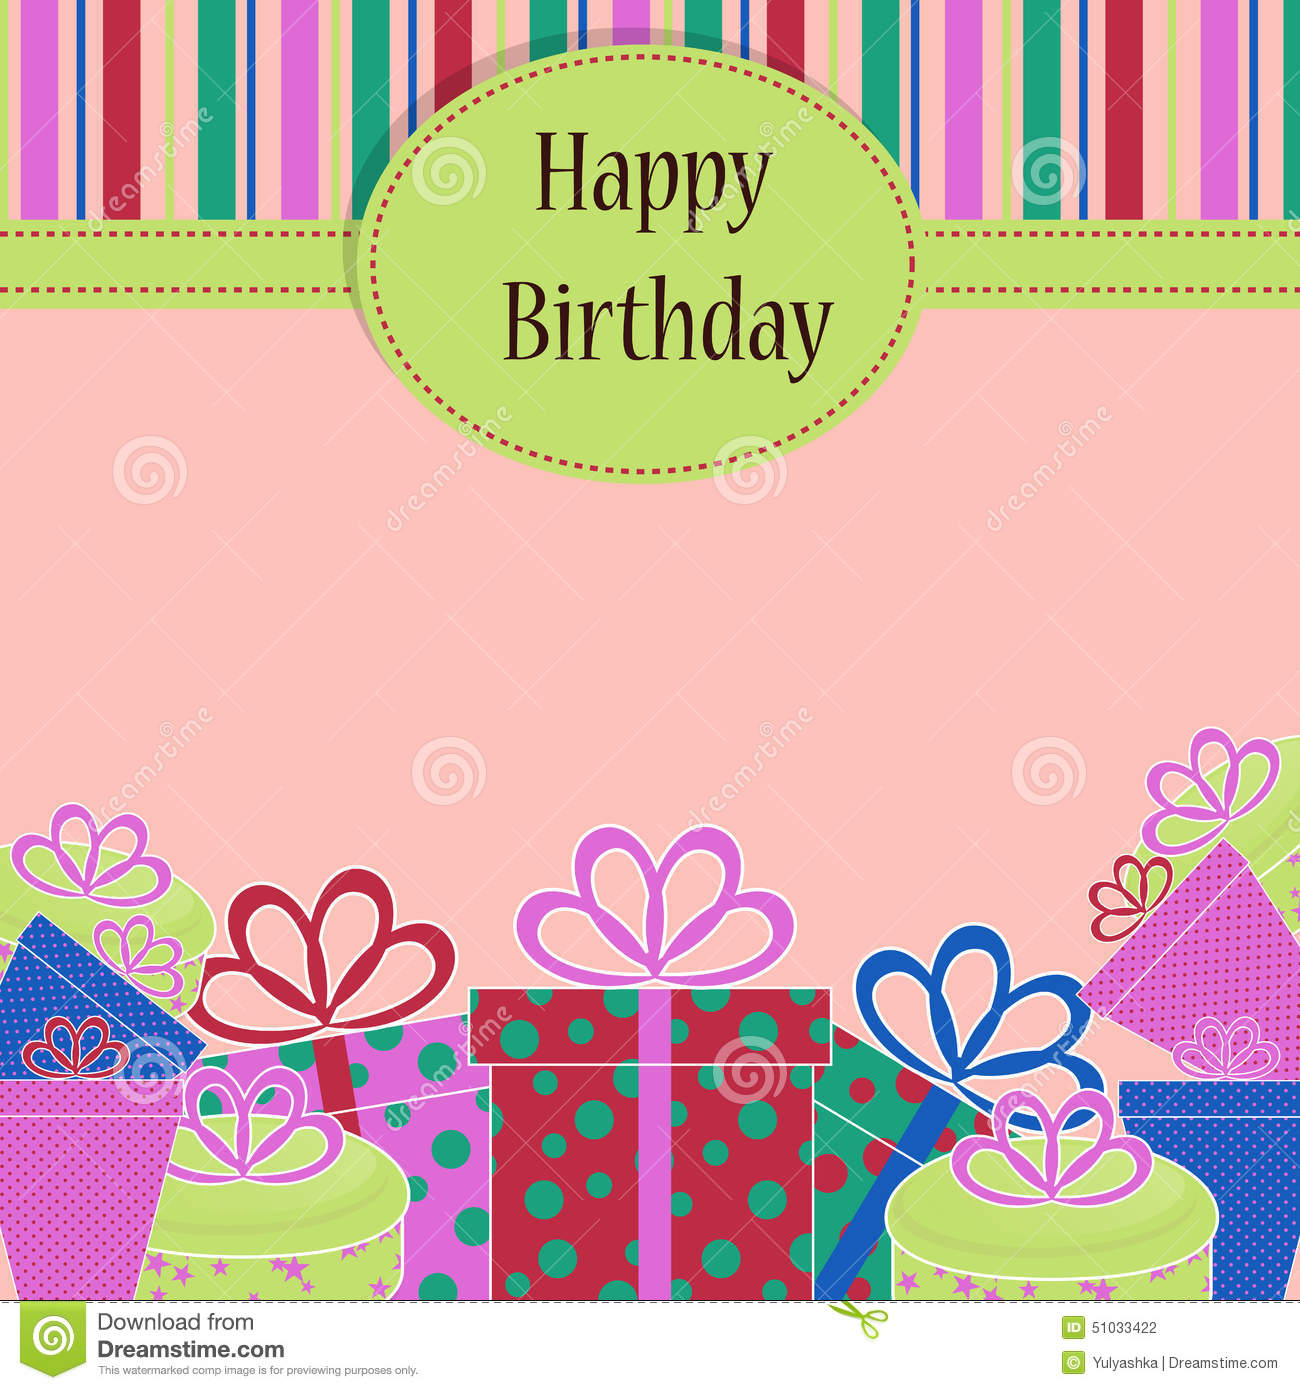 birthday greeting card template ; template-birthday-greeting-card-background-presents-ribbon-your-invite-51033422